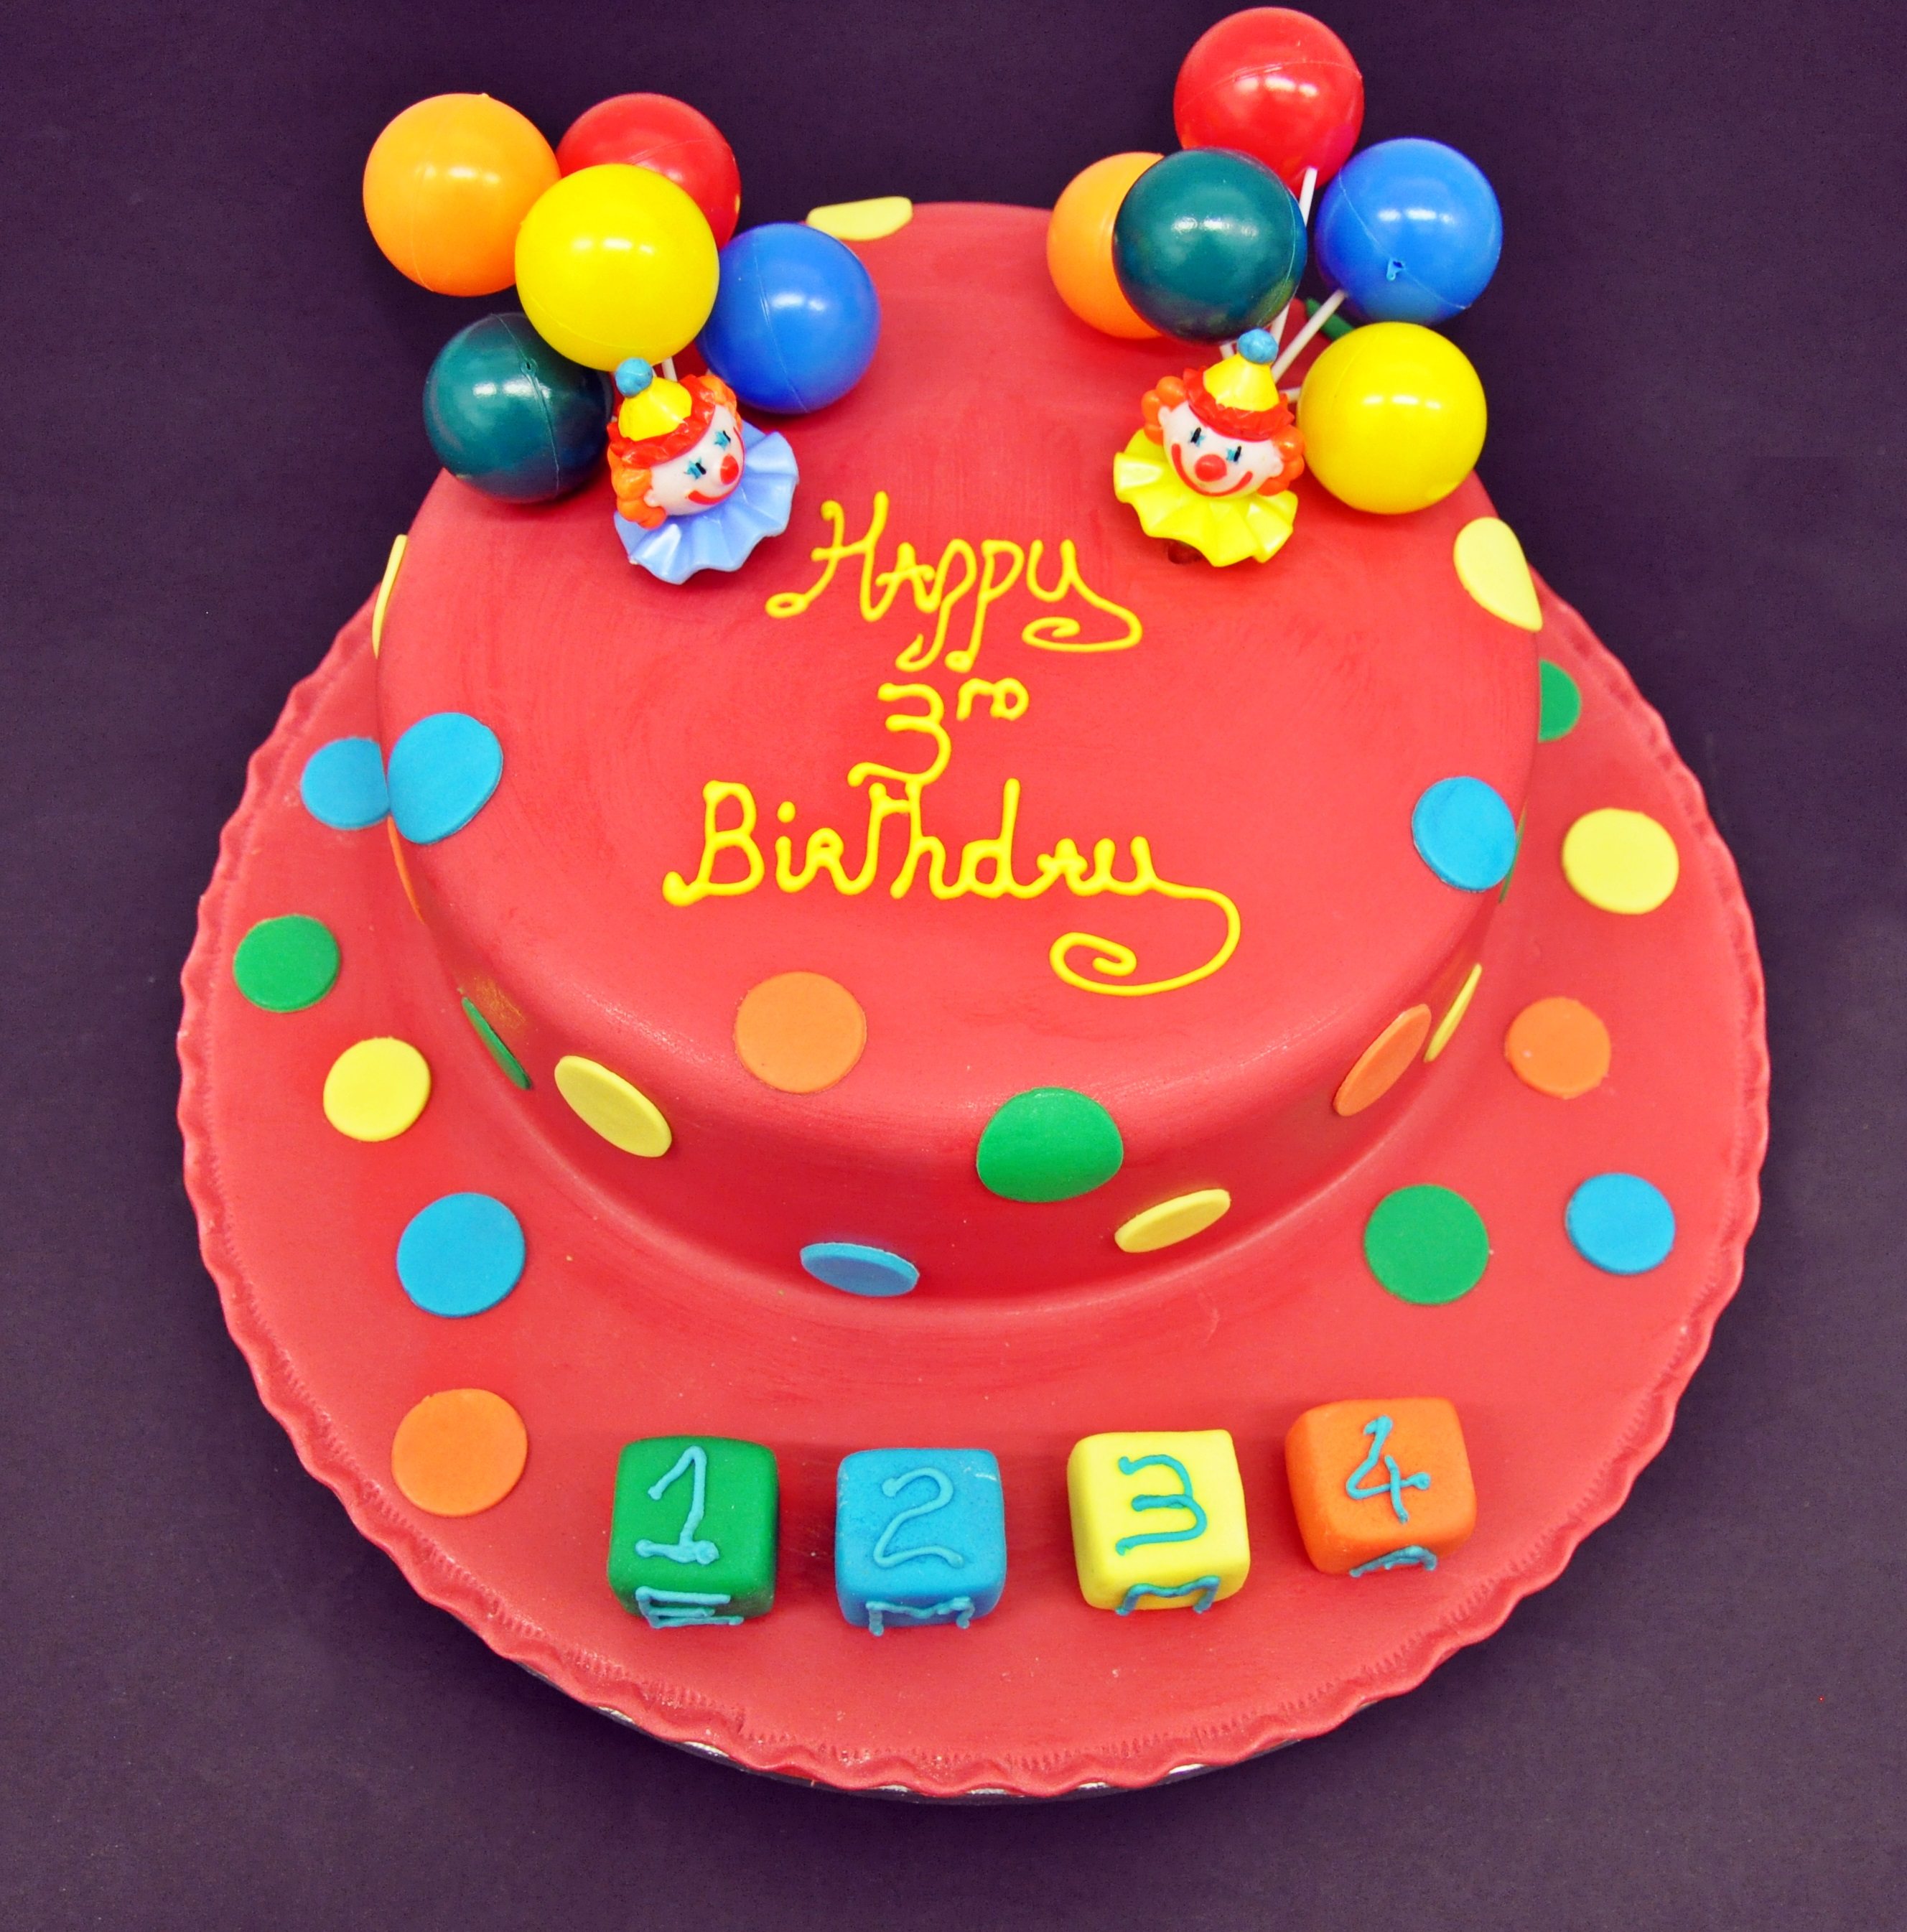 Birthday Cakes Images Birthday Cakes Dublin Mannings Bakery